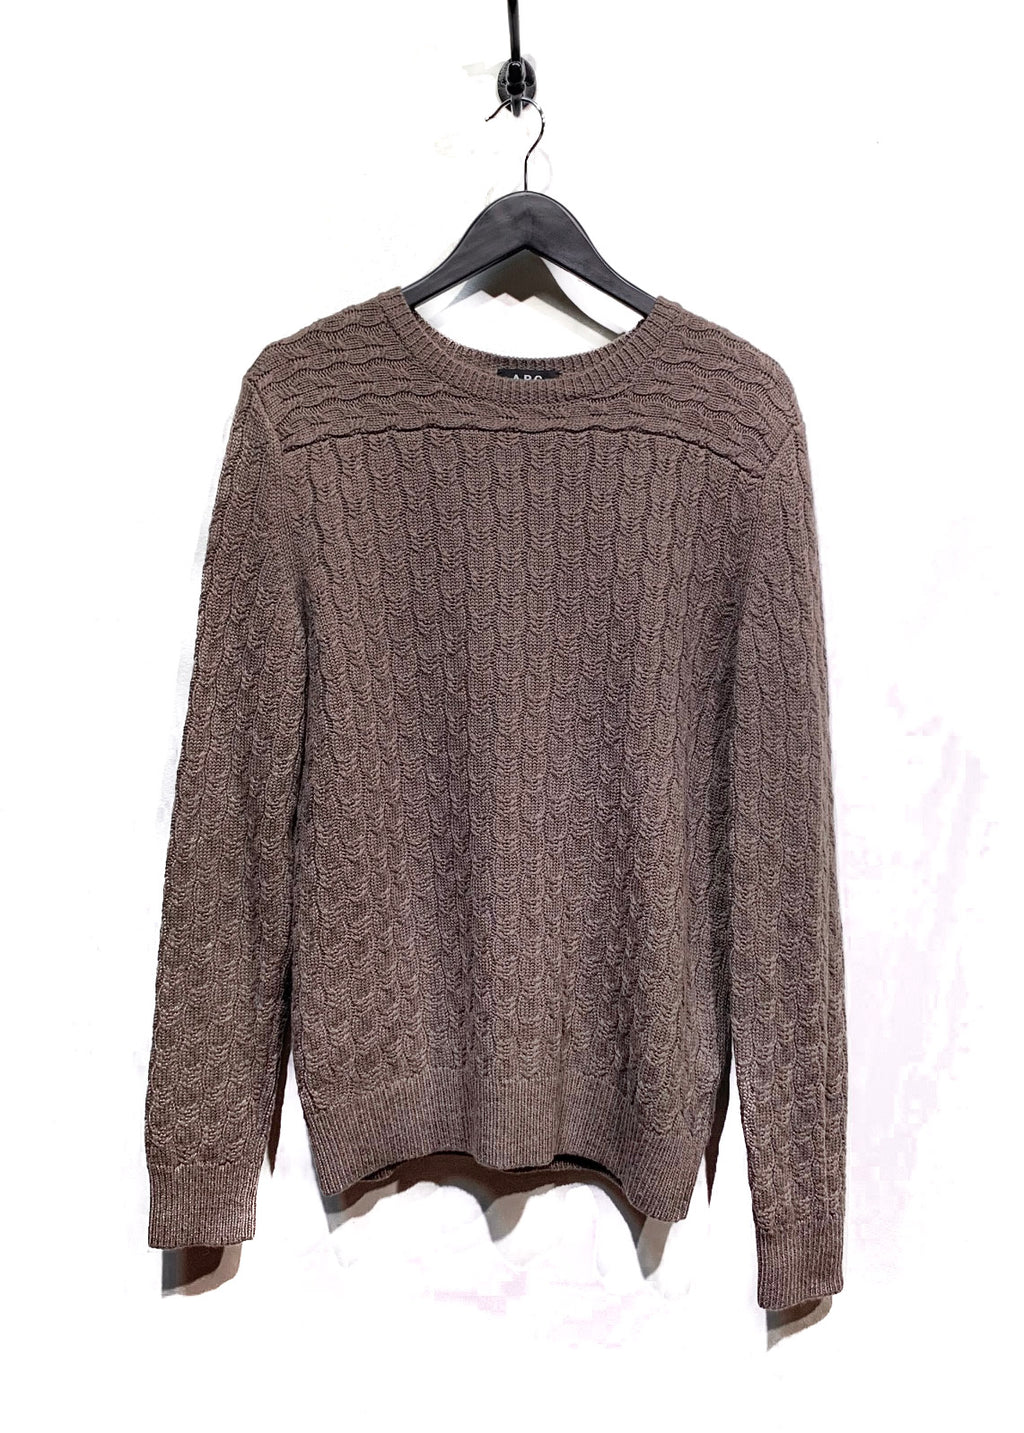 A.P.C. Taupe Merino Wool Cable Knit Sweater